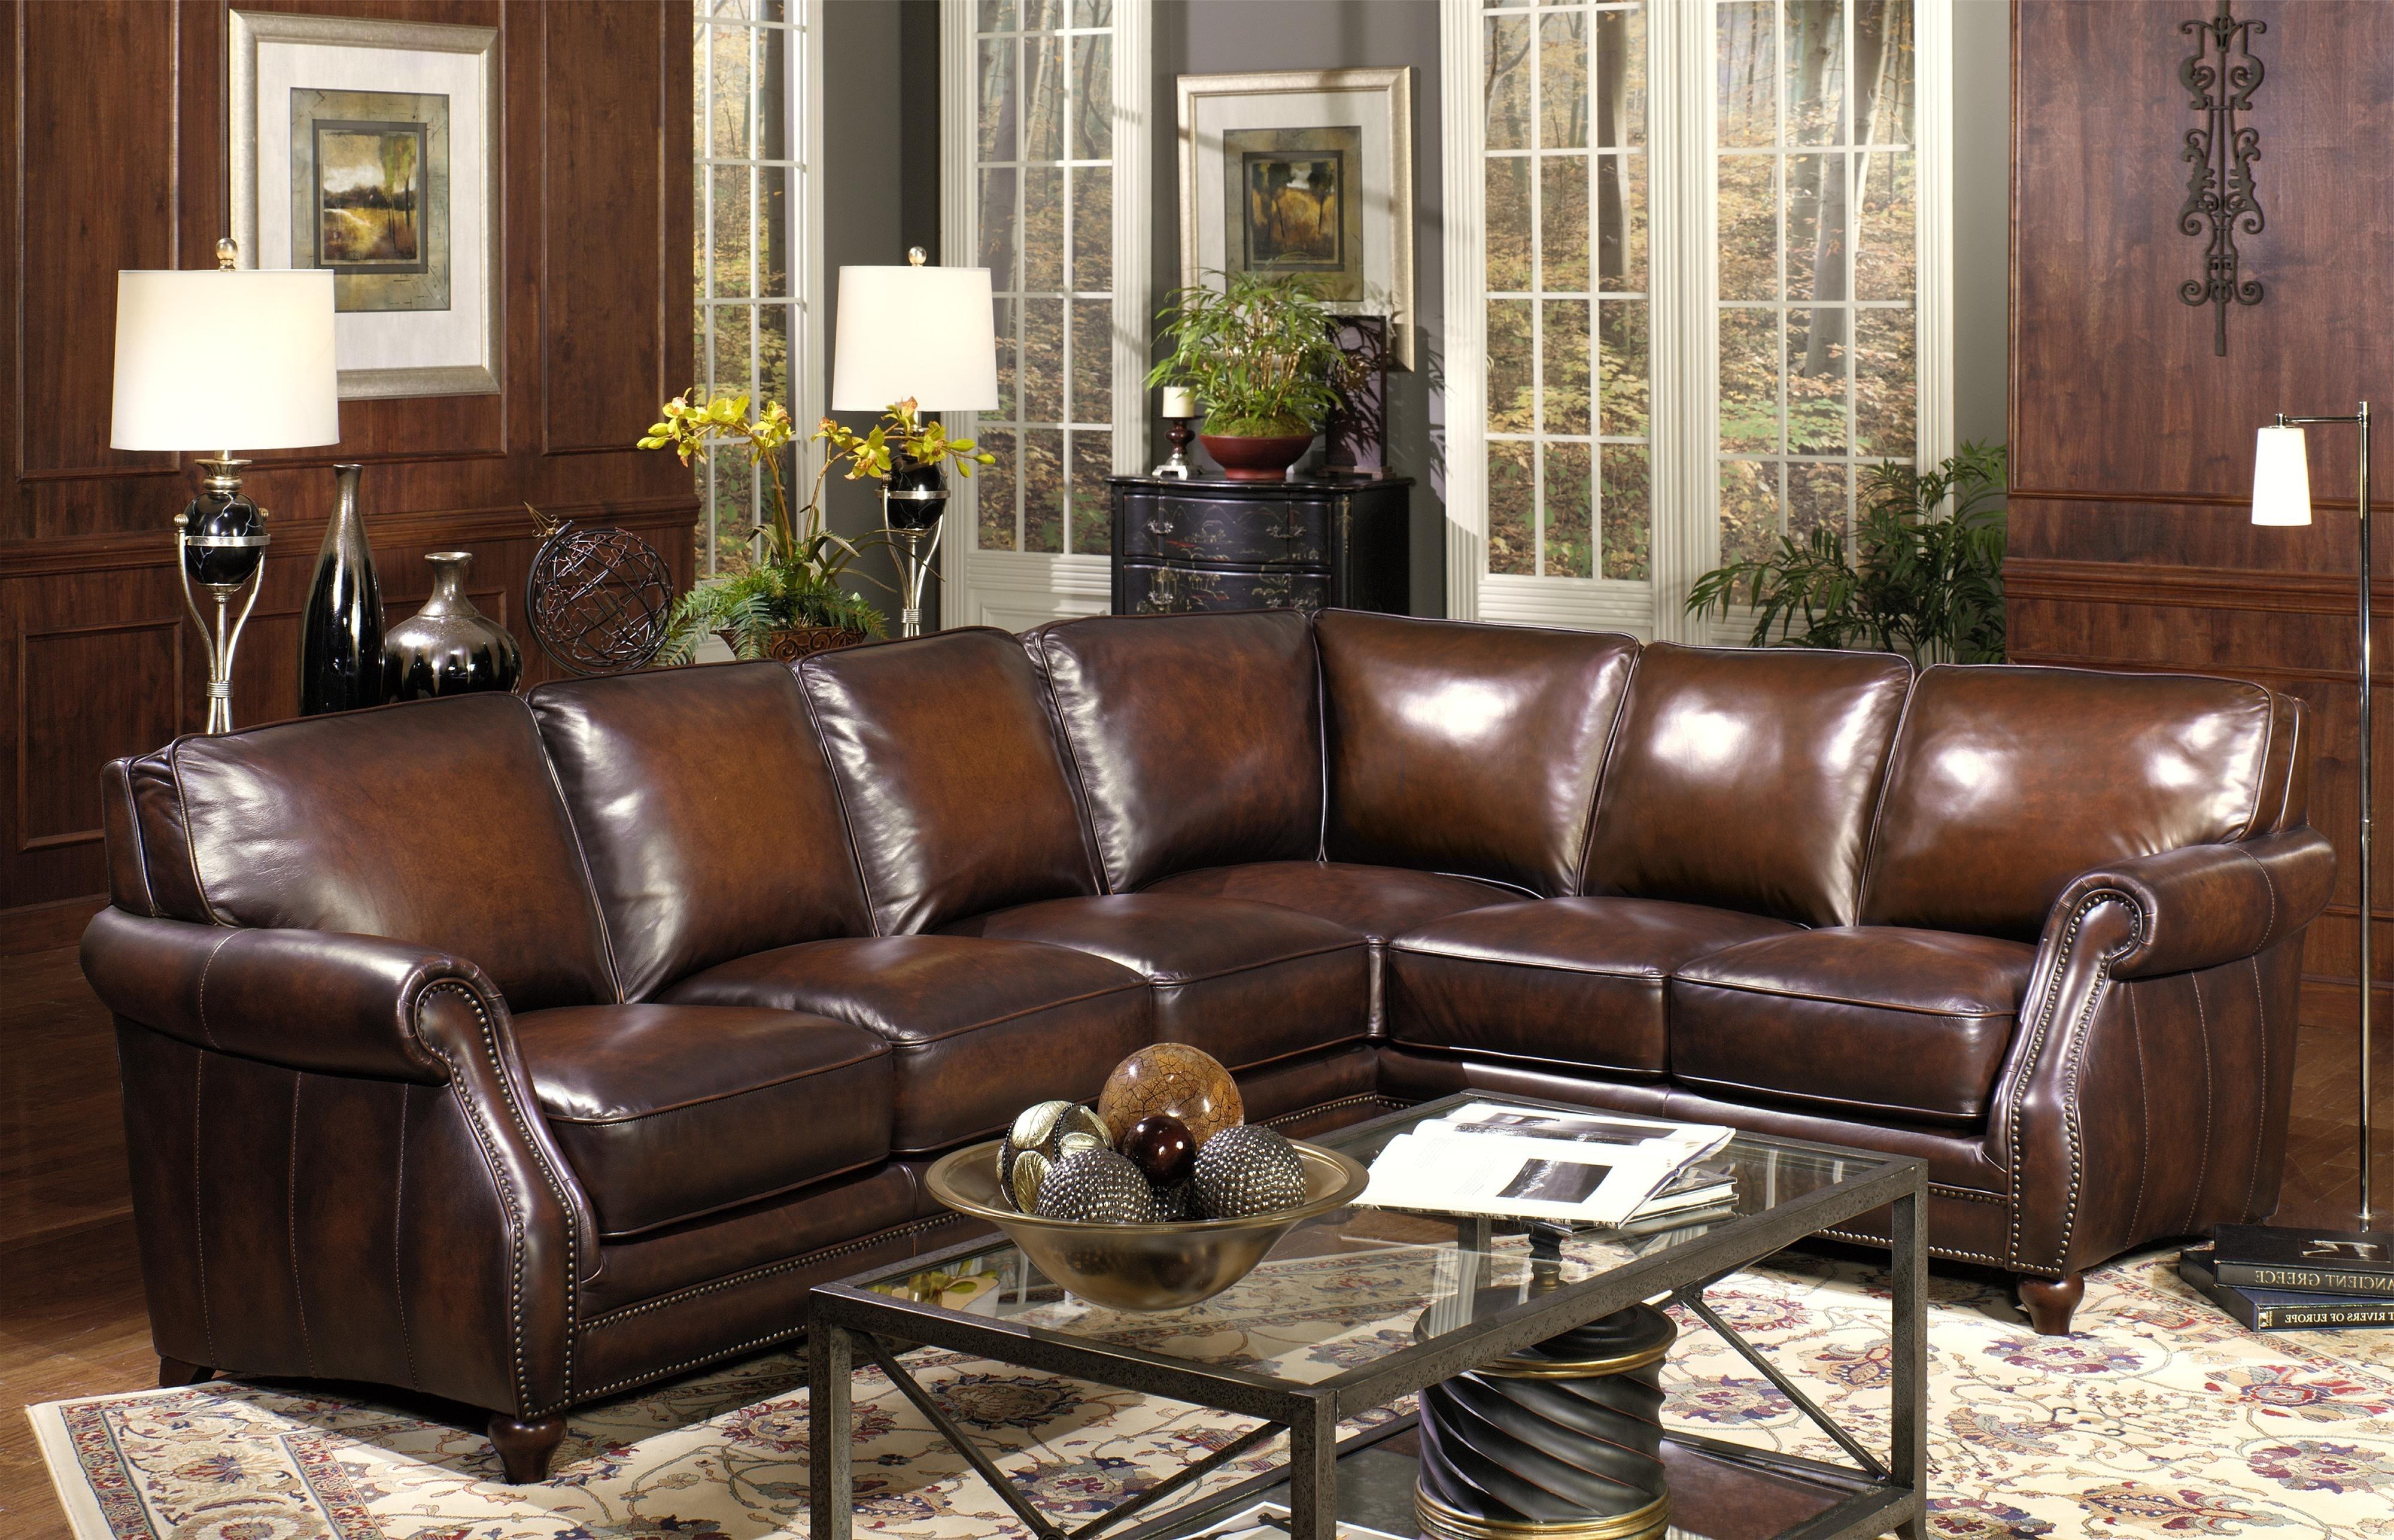 Sofa : Small Sectional Sofa Contemporary Sectional Sofas Best Within Preferred Quality Sectional Sofas (View 14 of 15)